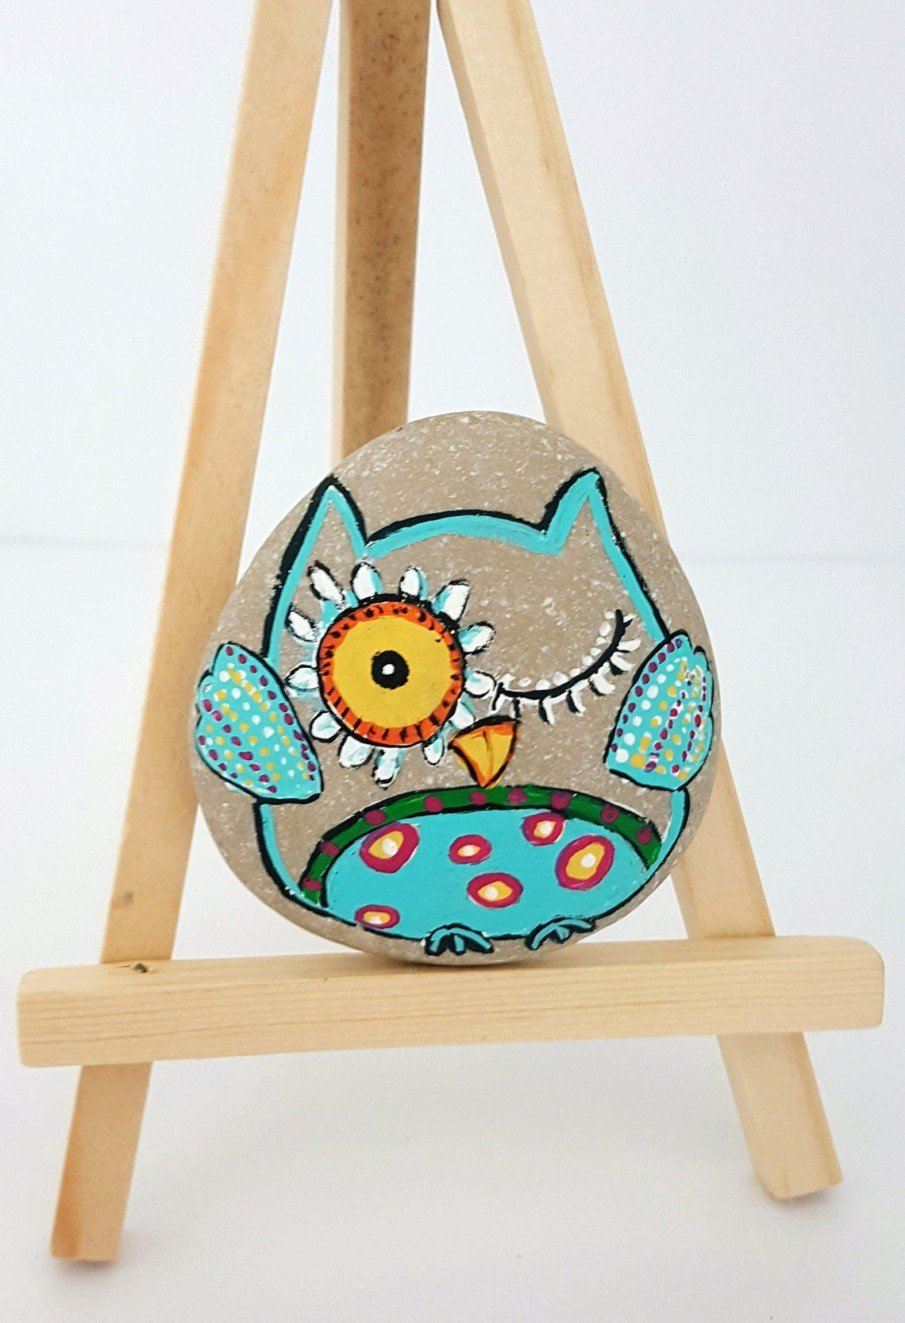 Painted funny owl rocks - great as garden decor